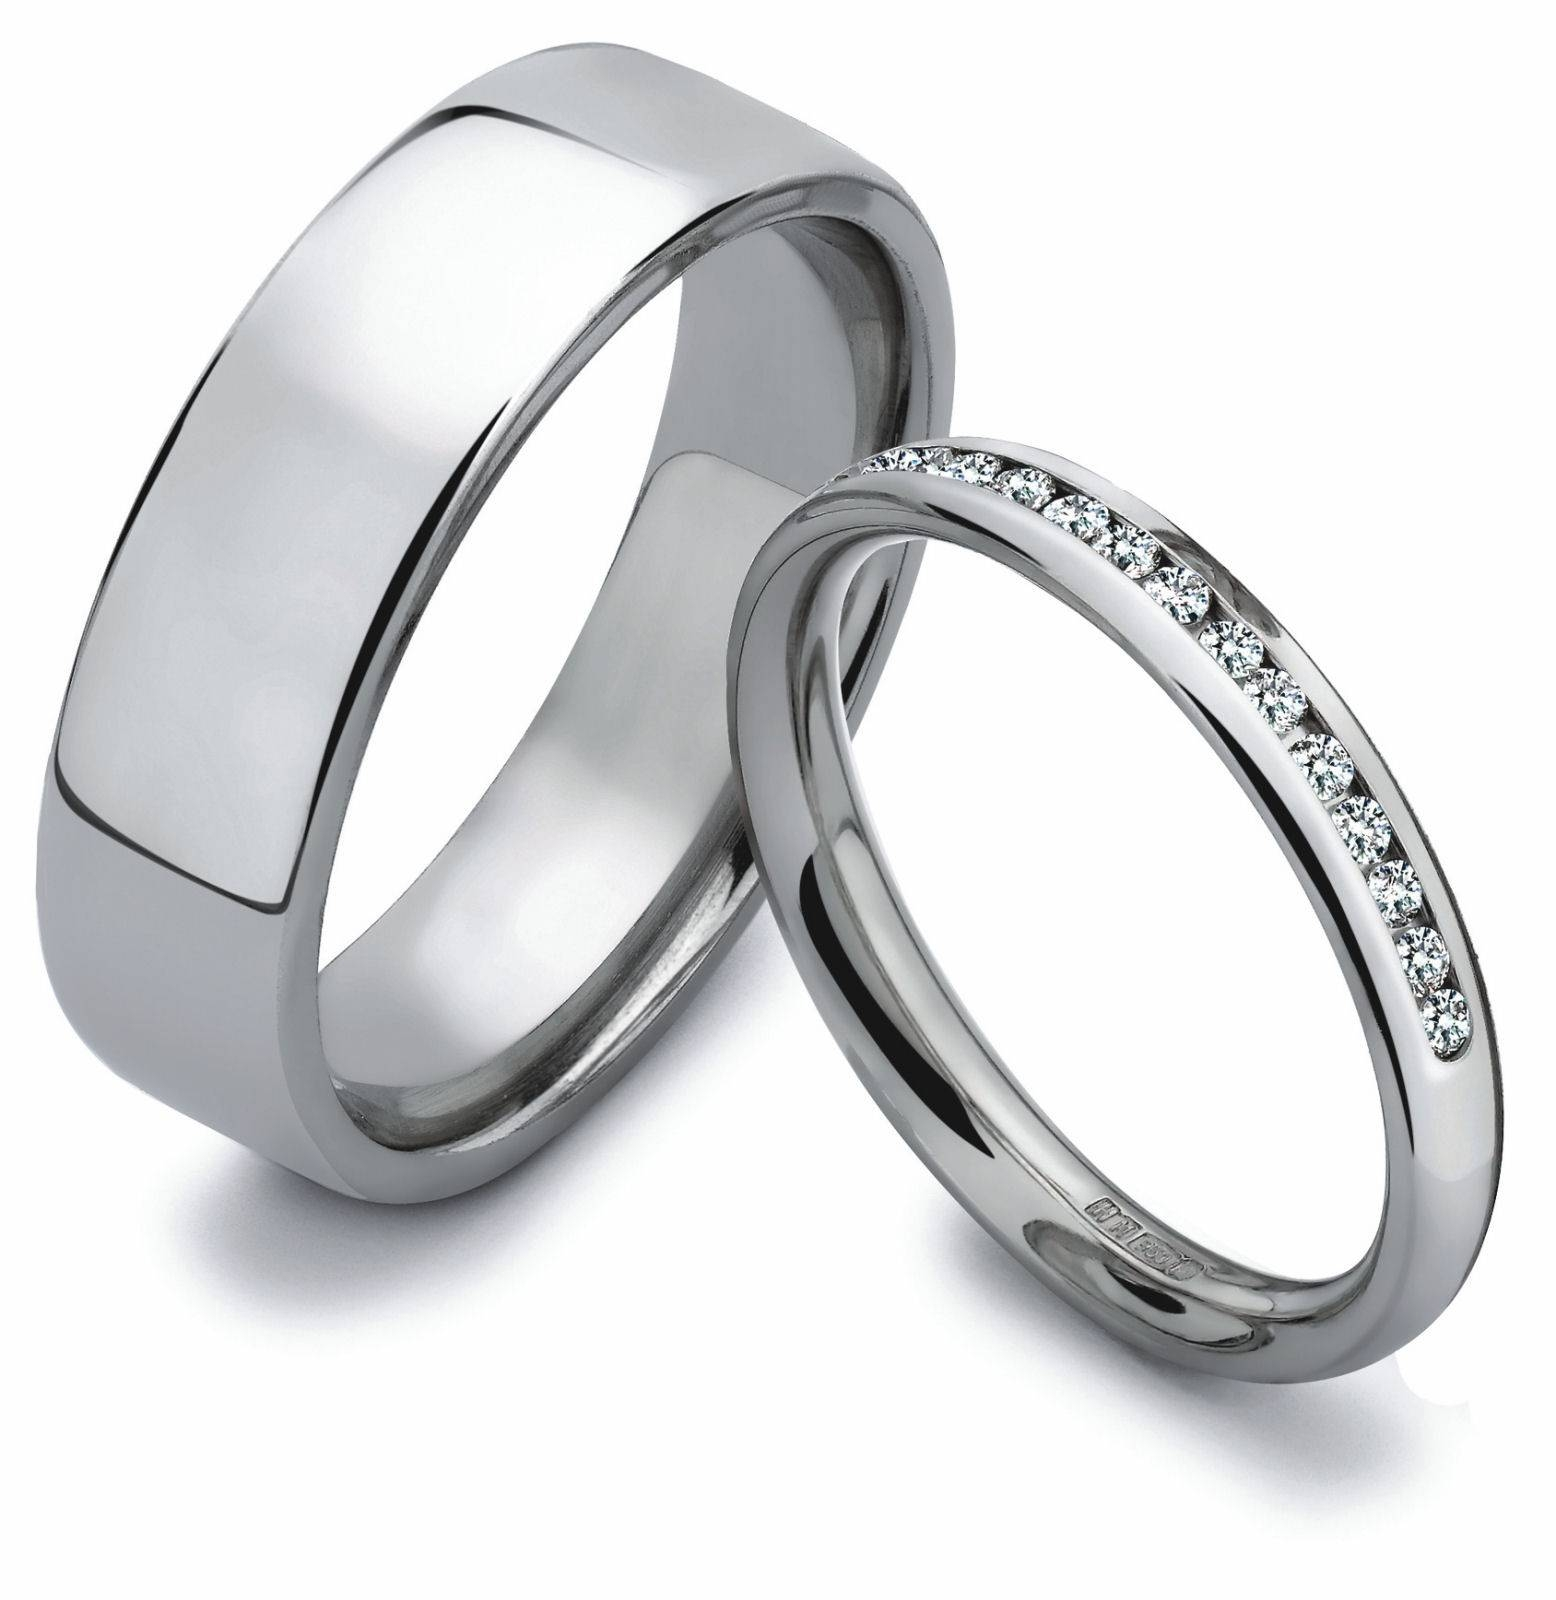 Cheap His And Hers Wedding Ring Sets | Wedding Ideas Inside Wedding Bands Sets For Him And Her (View 10 of 15)